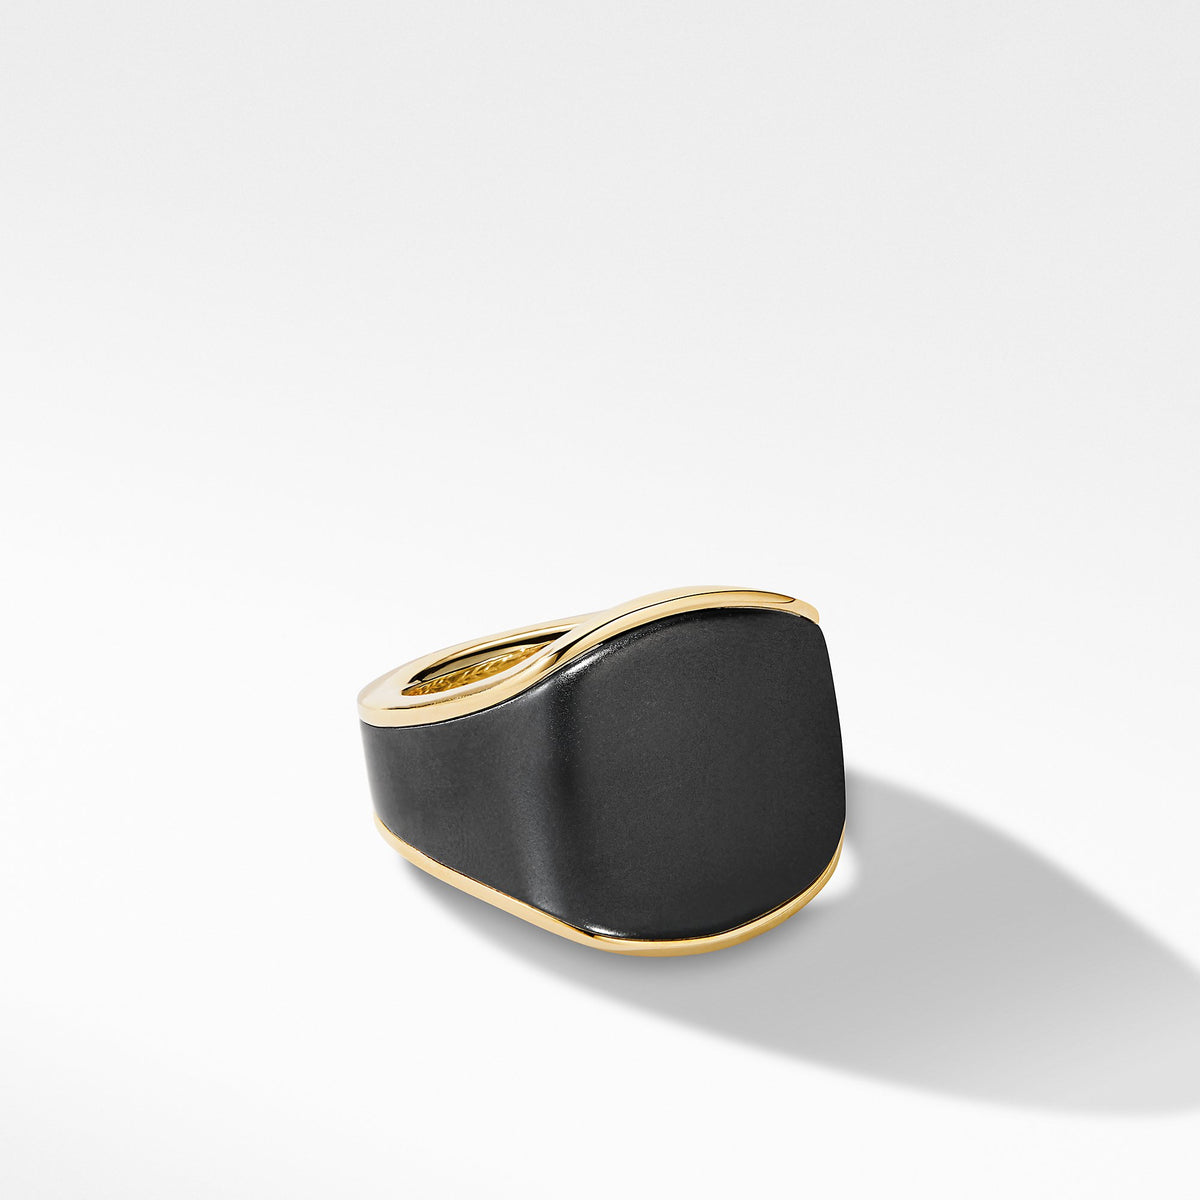 Streamline Signet Ring in 18K Yellow Gold with Black Titanium